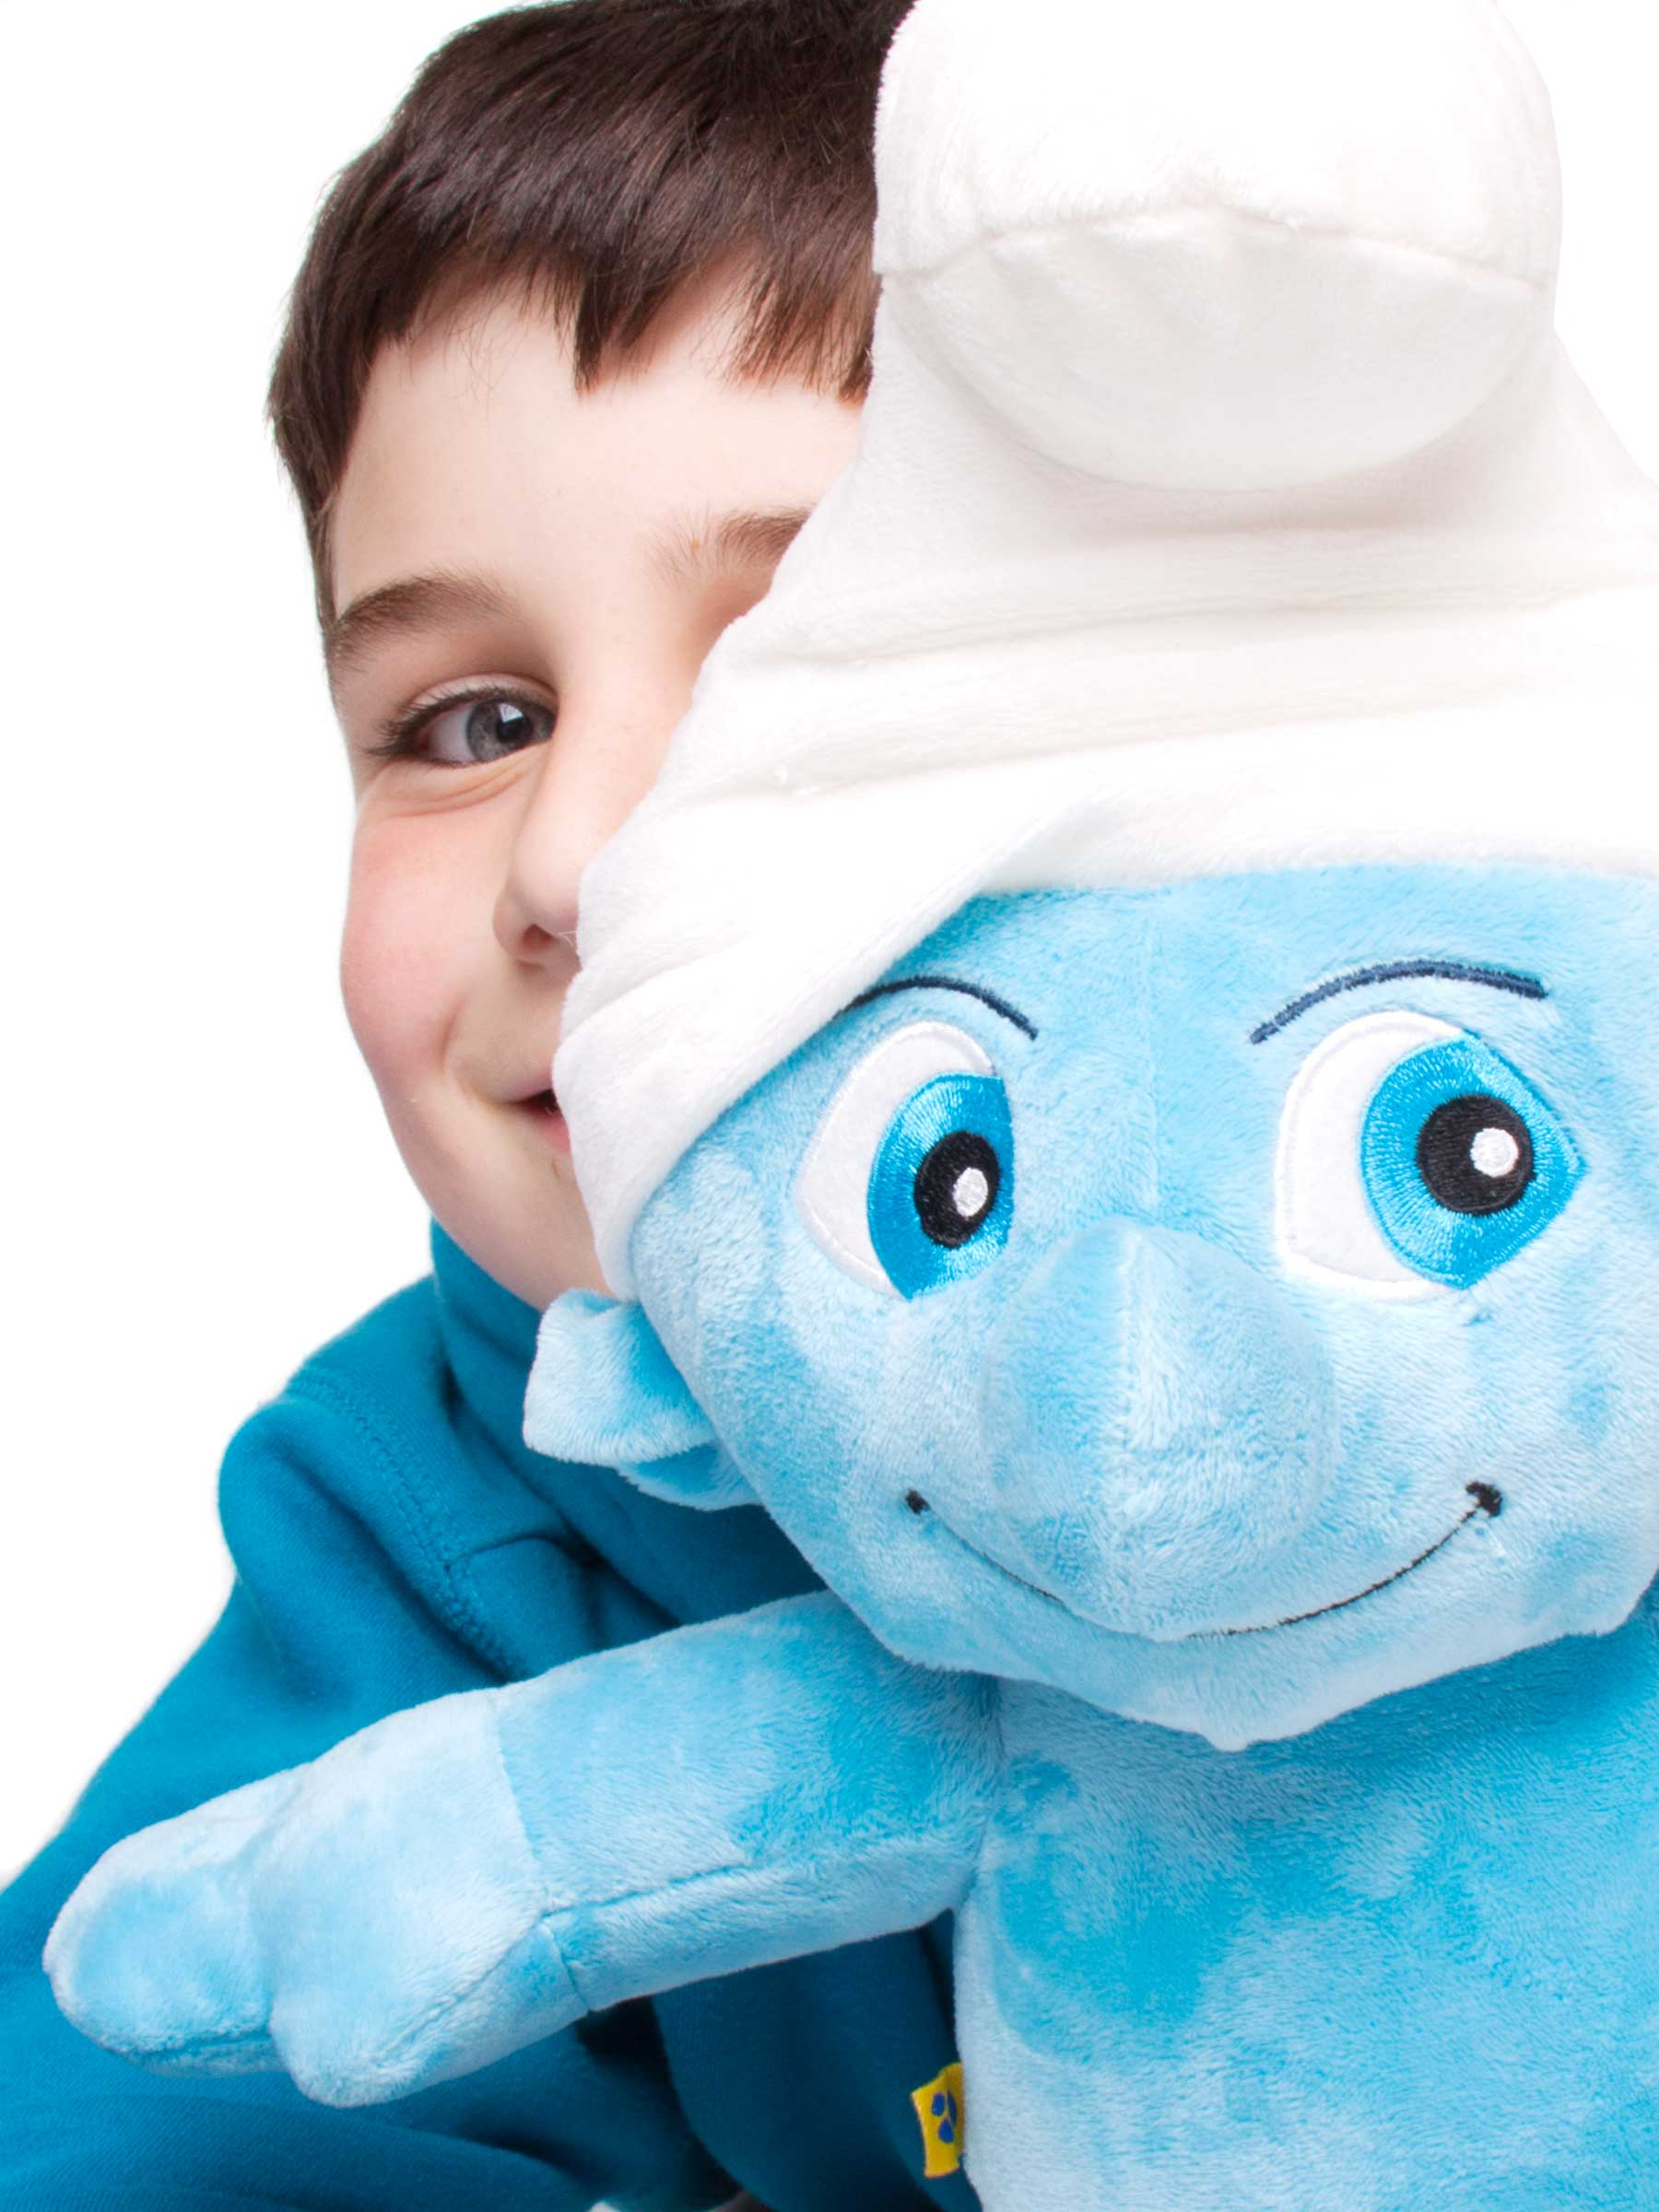 24-Home-Shoot-Boy-Smurf-Teddy-Colour-Philip-Murray-Photography-Dublin